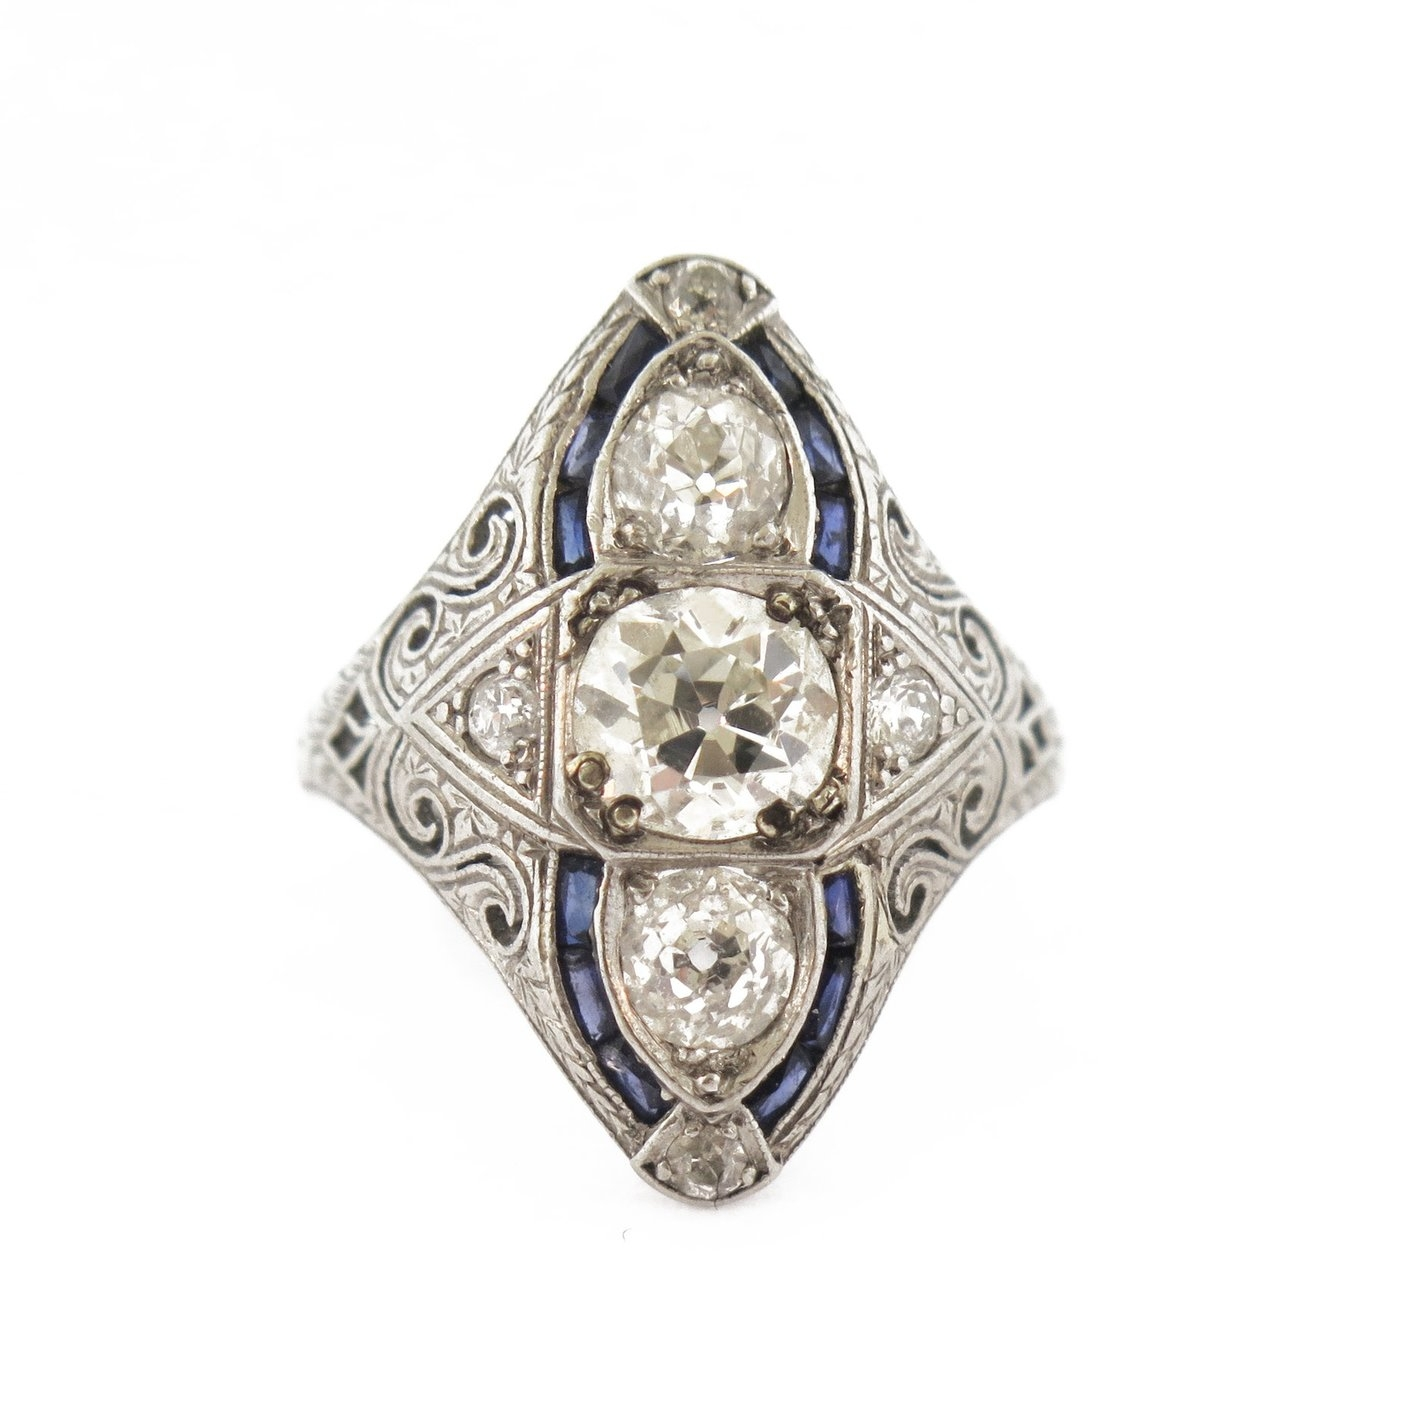 Navette Diamond Ring with Sapphires